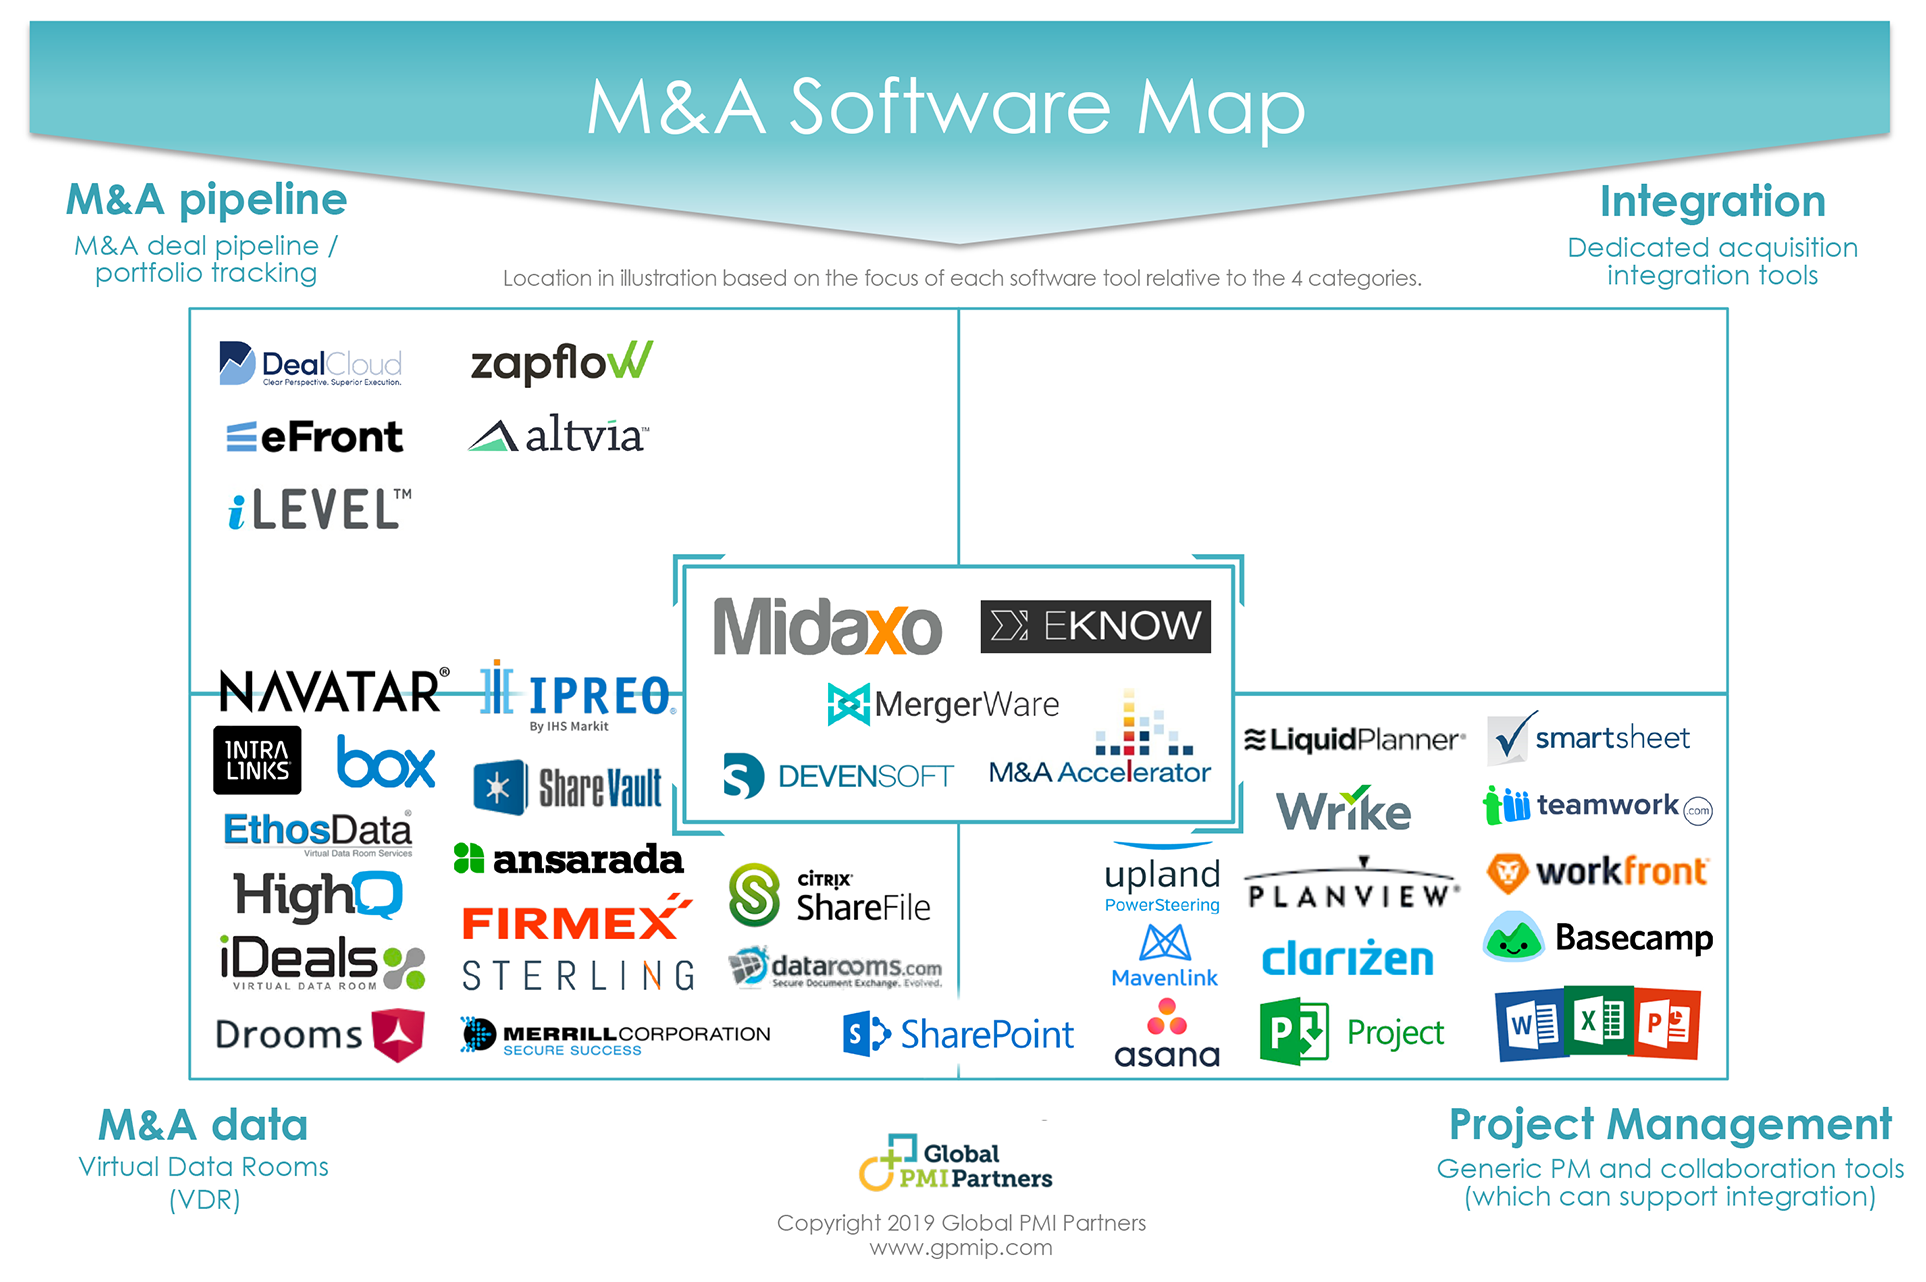 The Guide to M&A Integration Software Tools